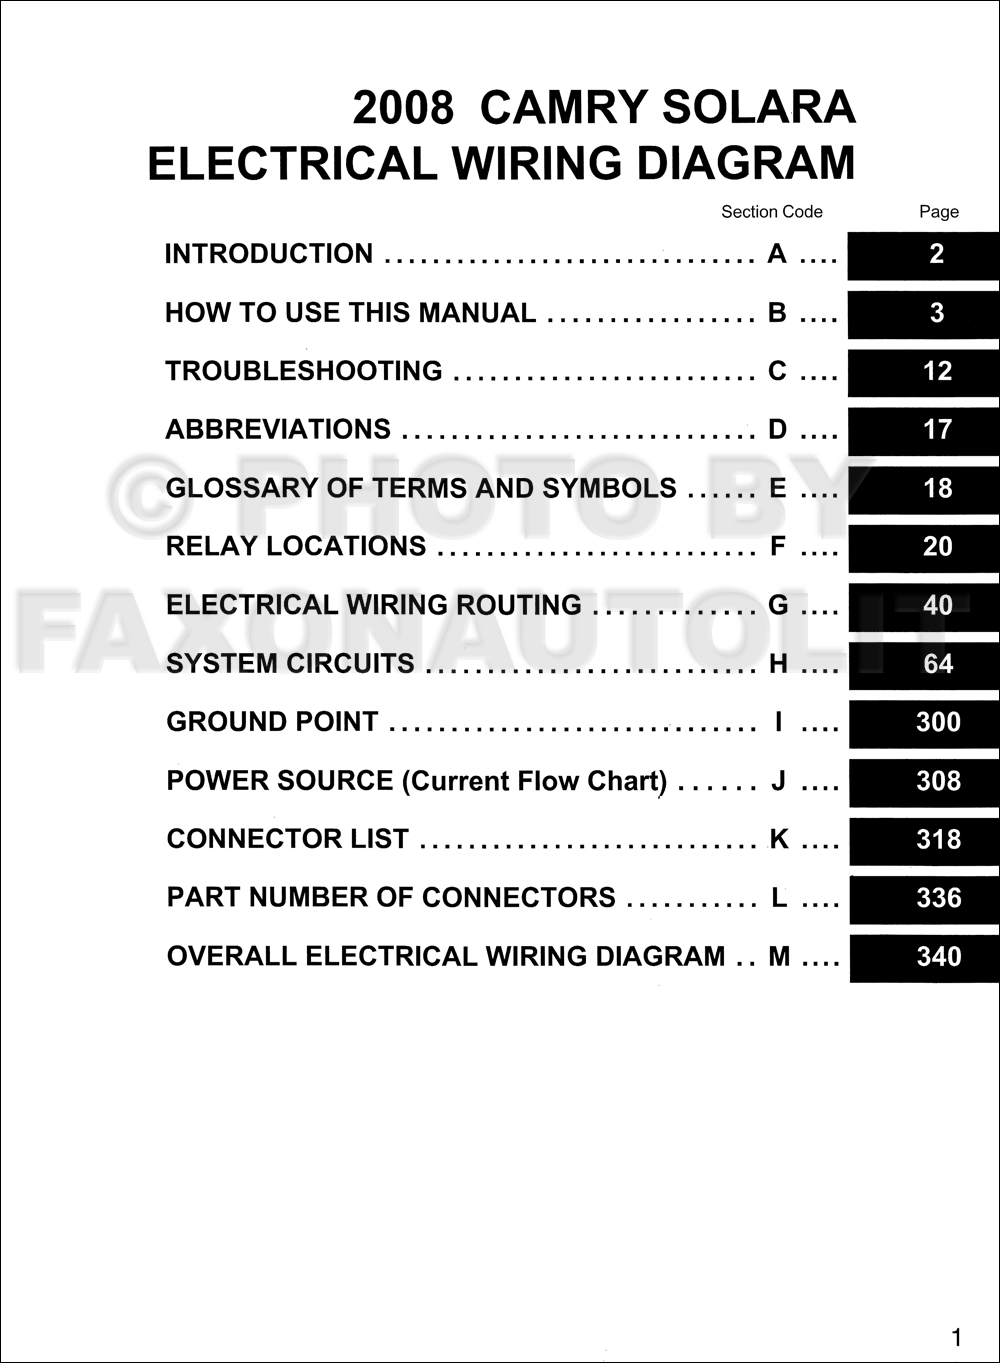 2008 toyota solara wiring diagram manual original2008 toyota solara wiring diagram manual original click on thumbnail to zoom